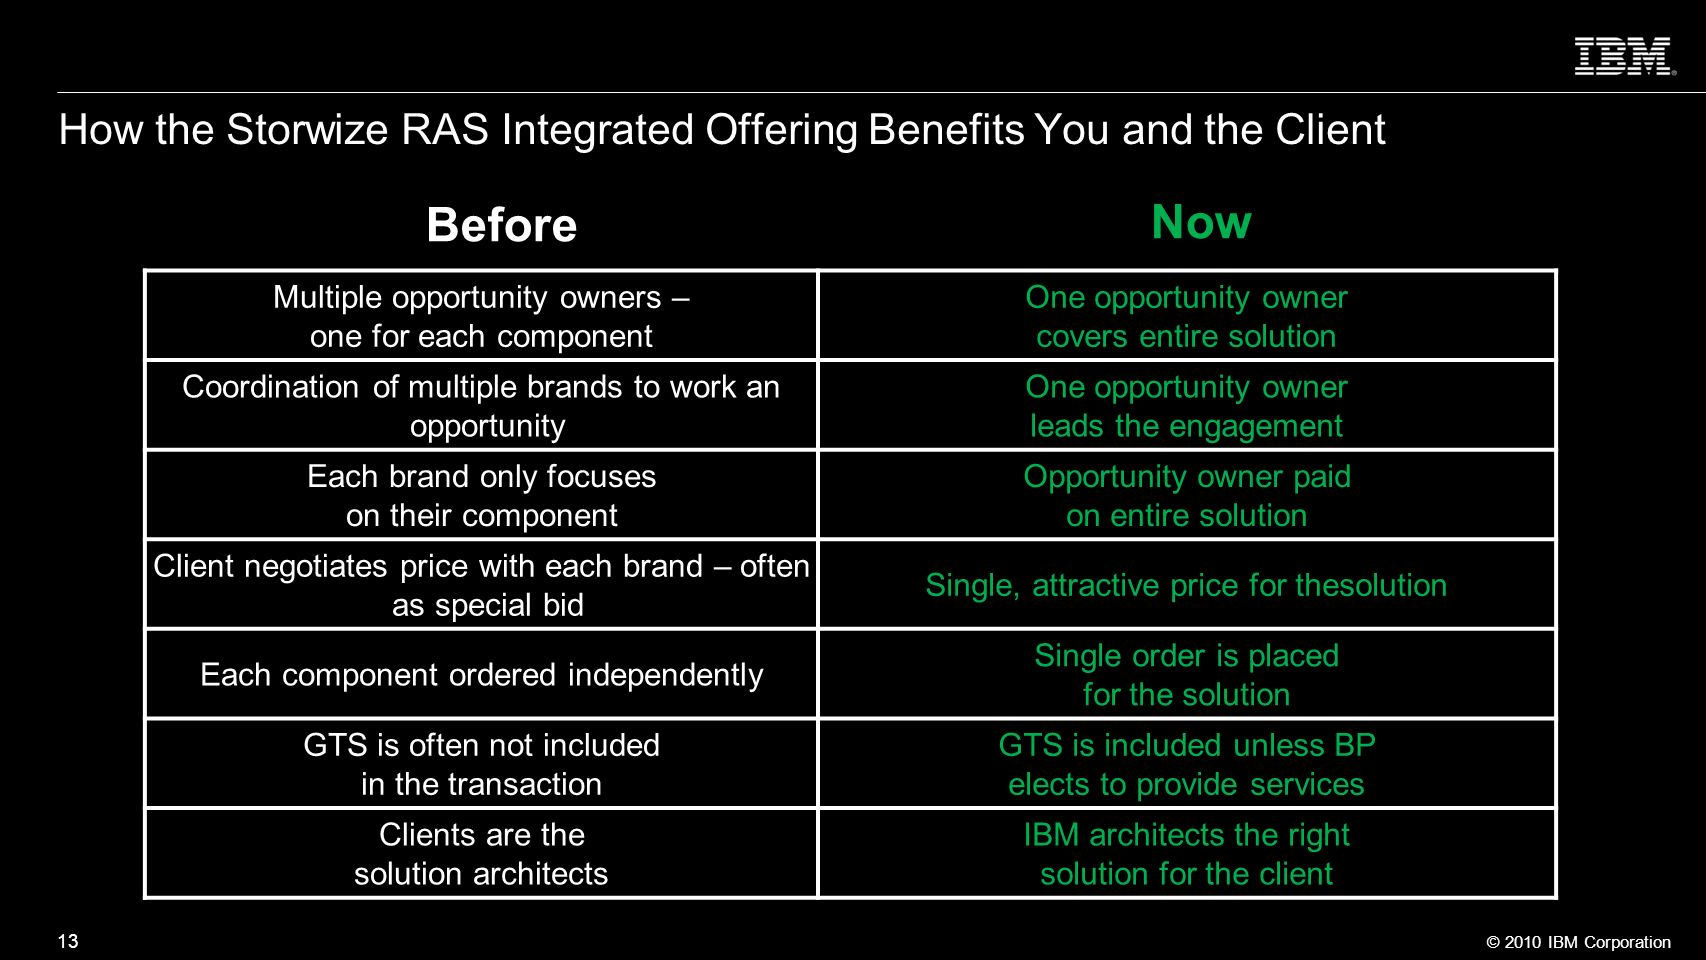 How the Storwize RAS Integrated Offering Benefits You and the Client